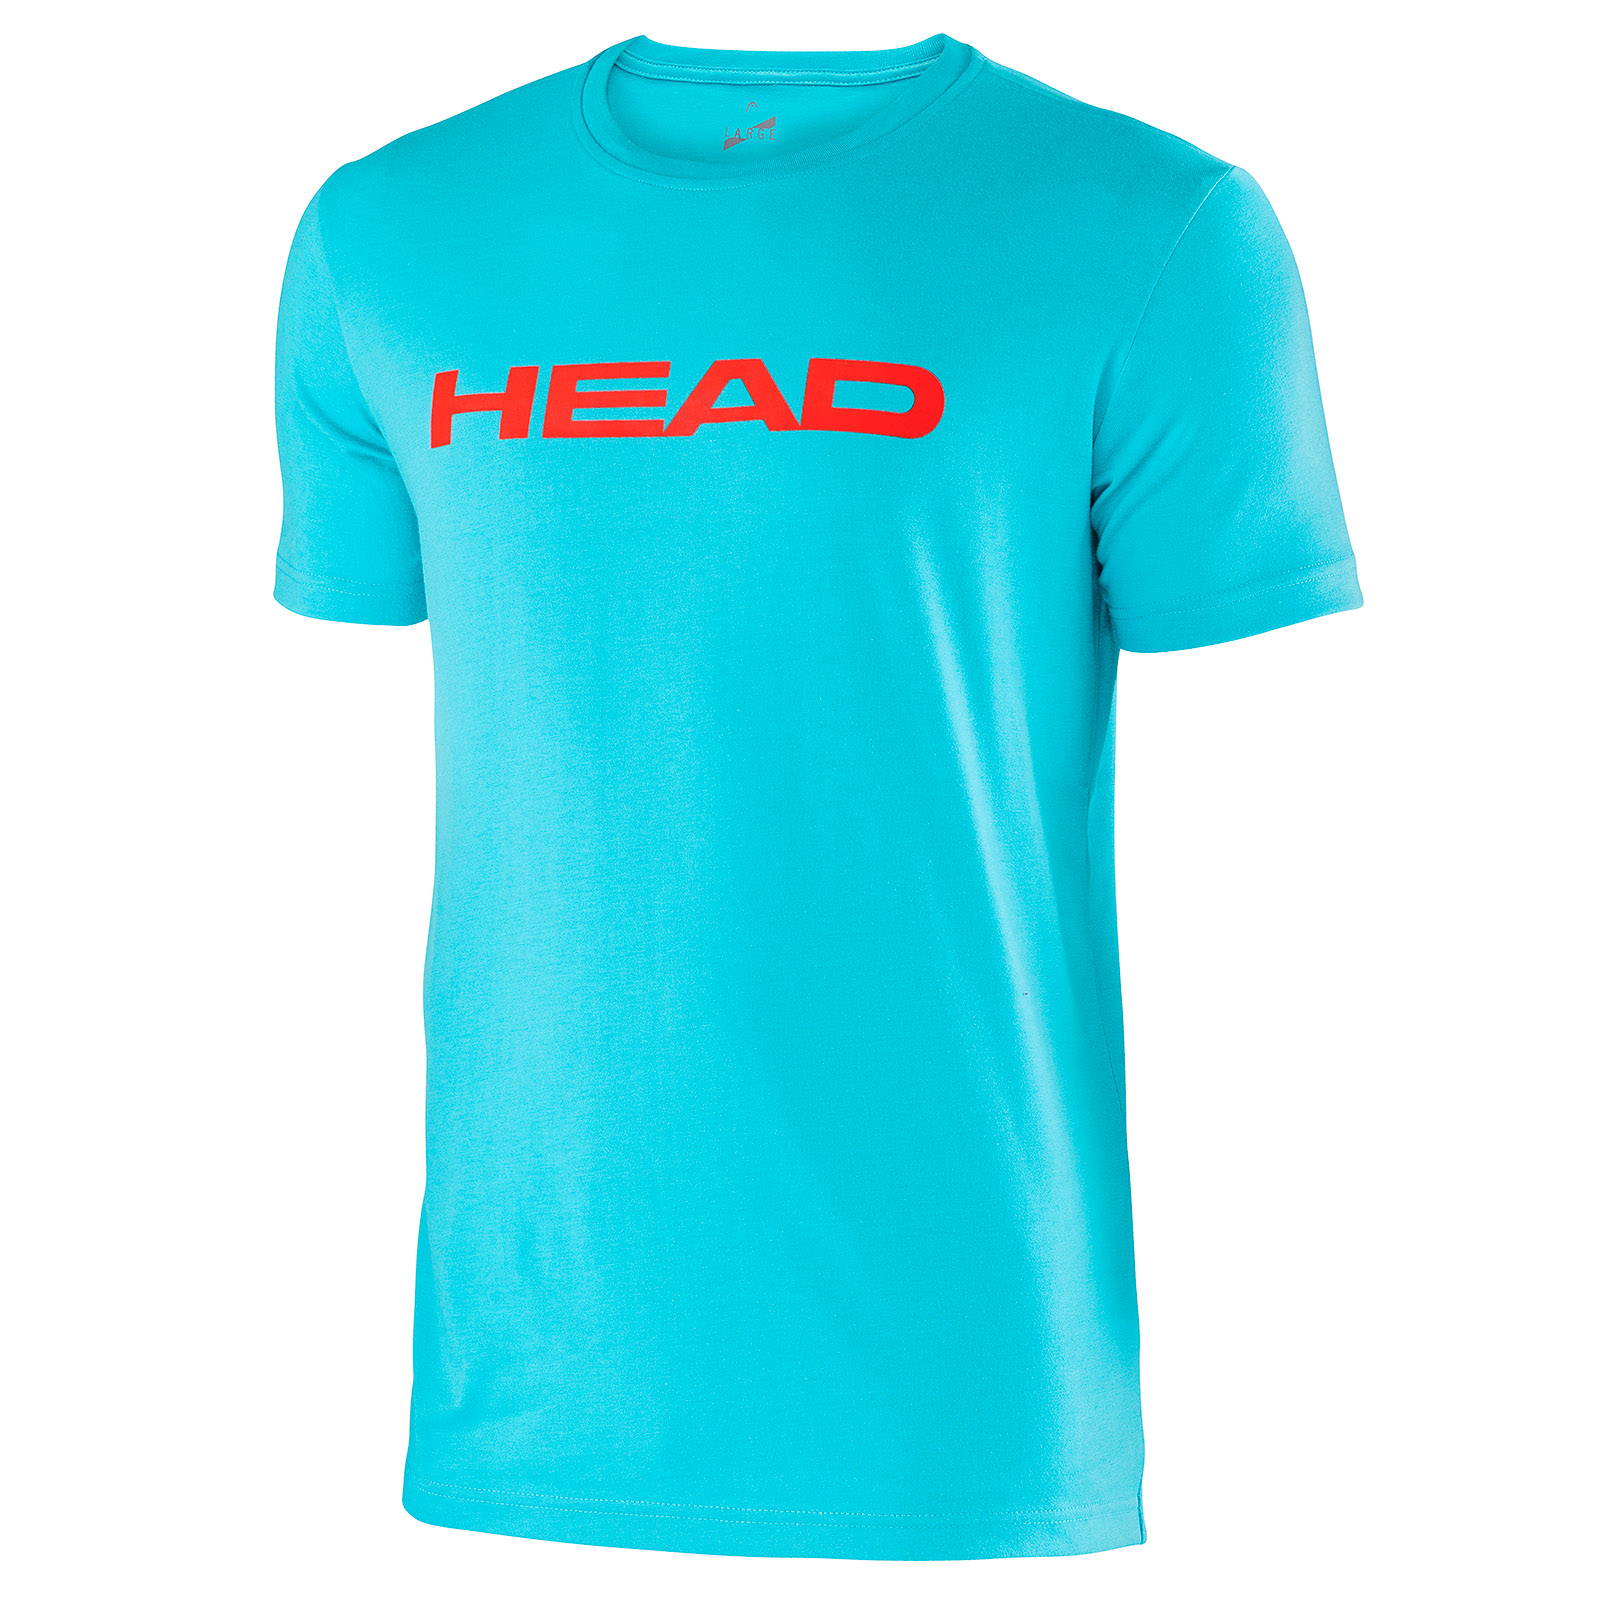 Head T-shirt - Ivan JR Turquoise 164